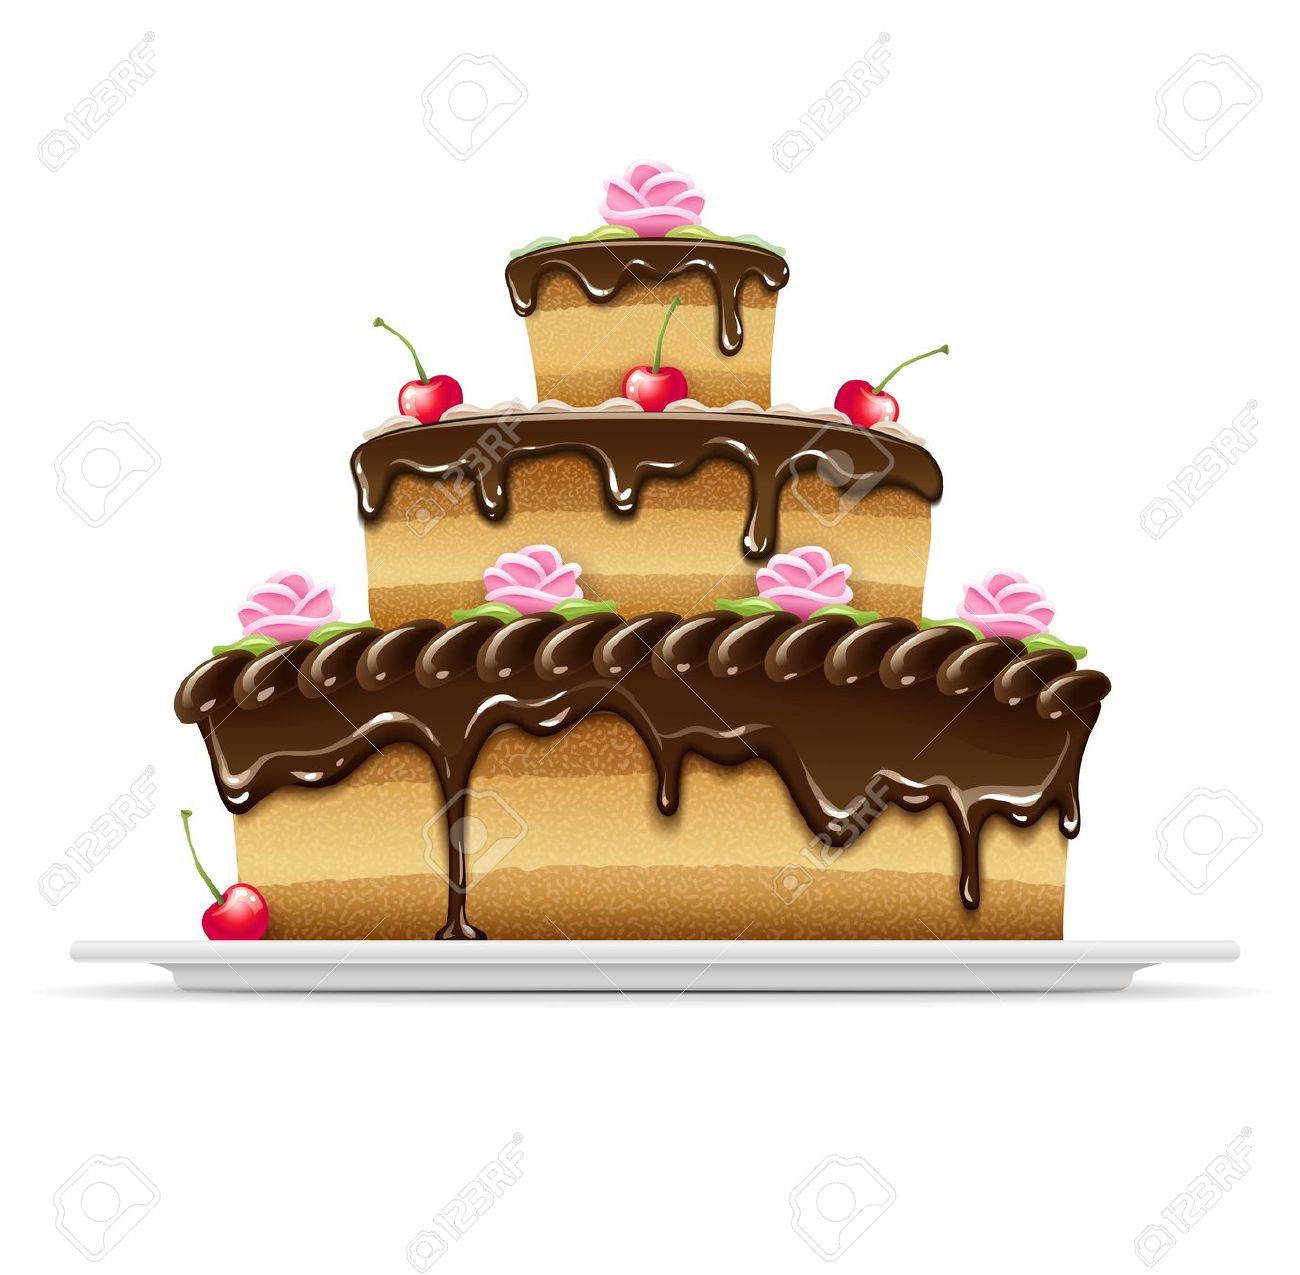 7,033 Chocolate Icing Stock Vector Illustration And Royalty Free.